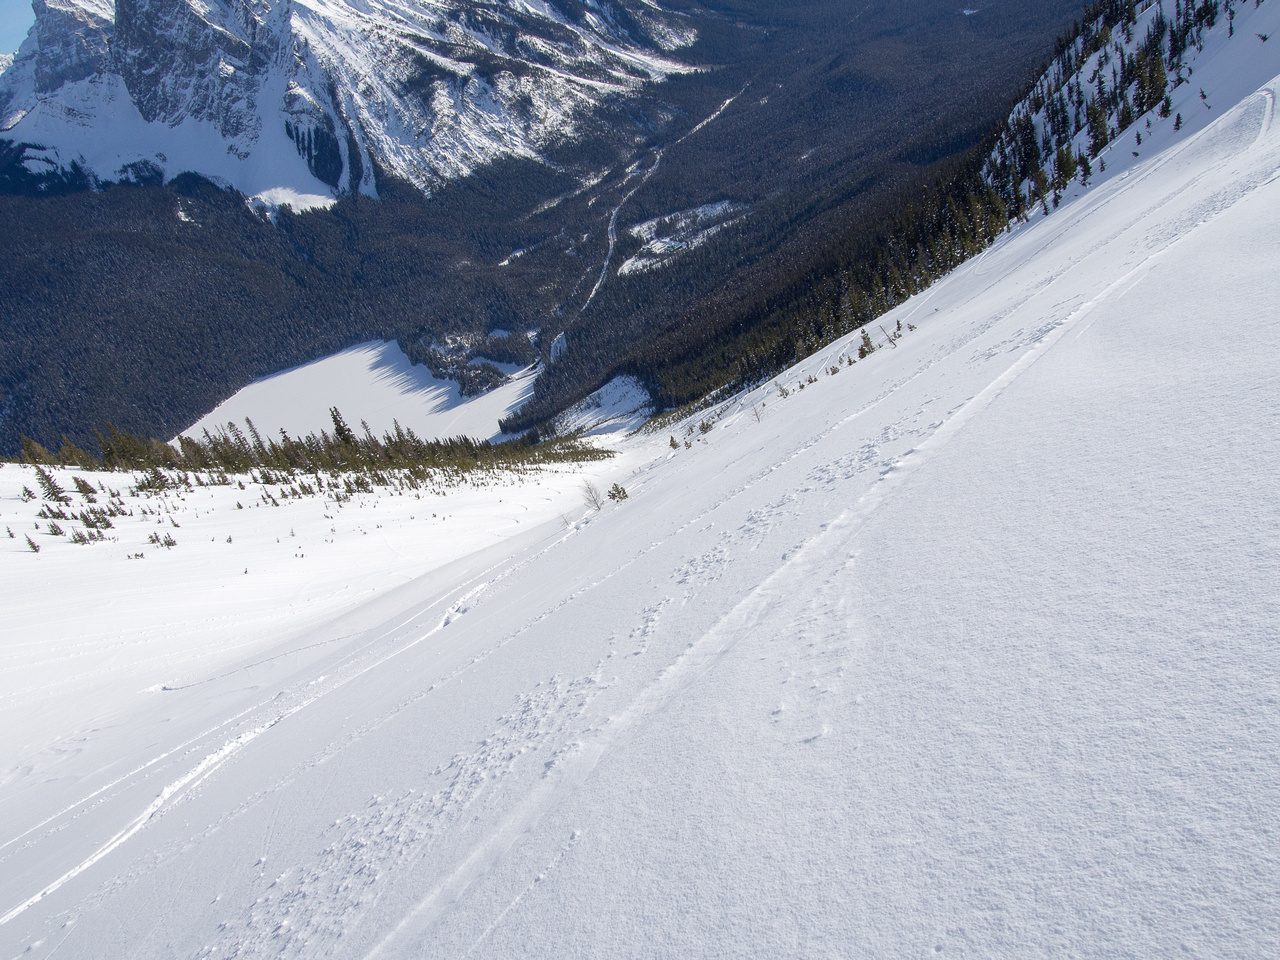 Looking down the slope - excellent snow up here! It's always over way too fast. What a waste to snowshoe something like this. :)